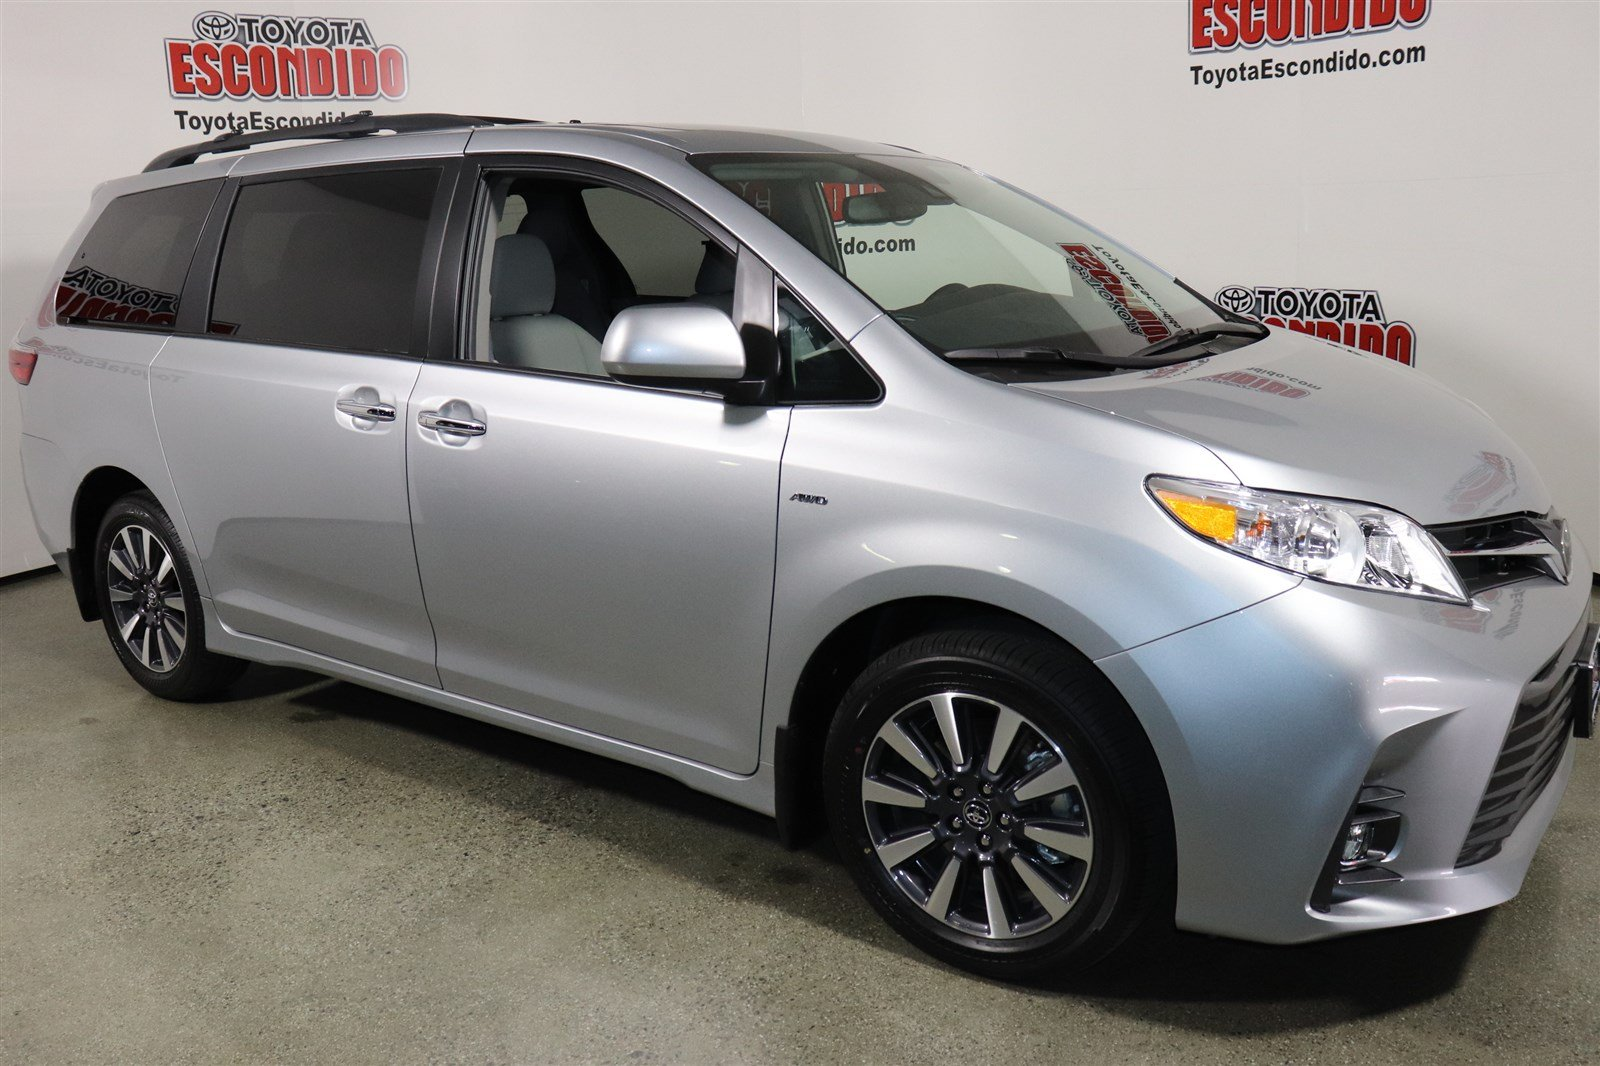 Toyota Sienna Service Manual: Propeller shaft system